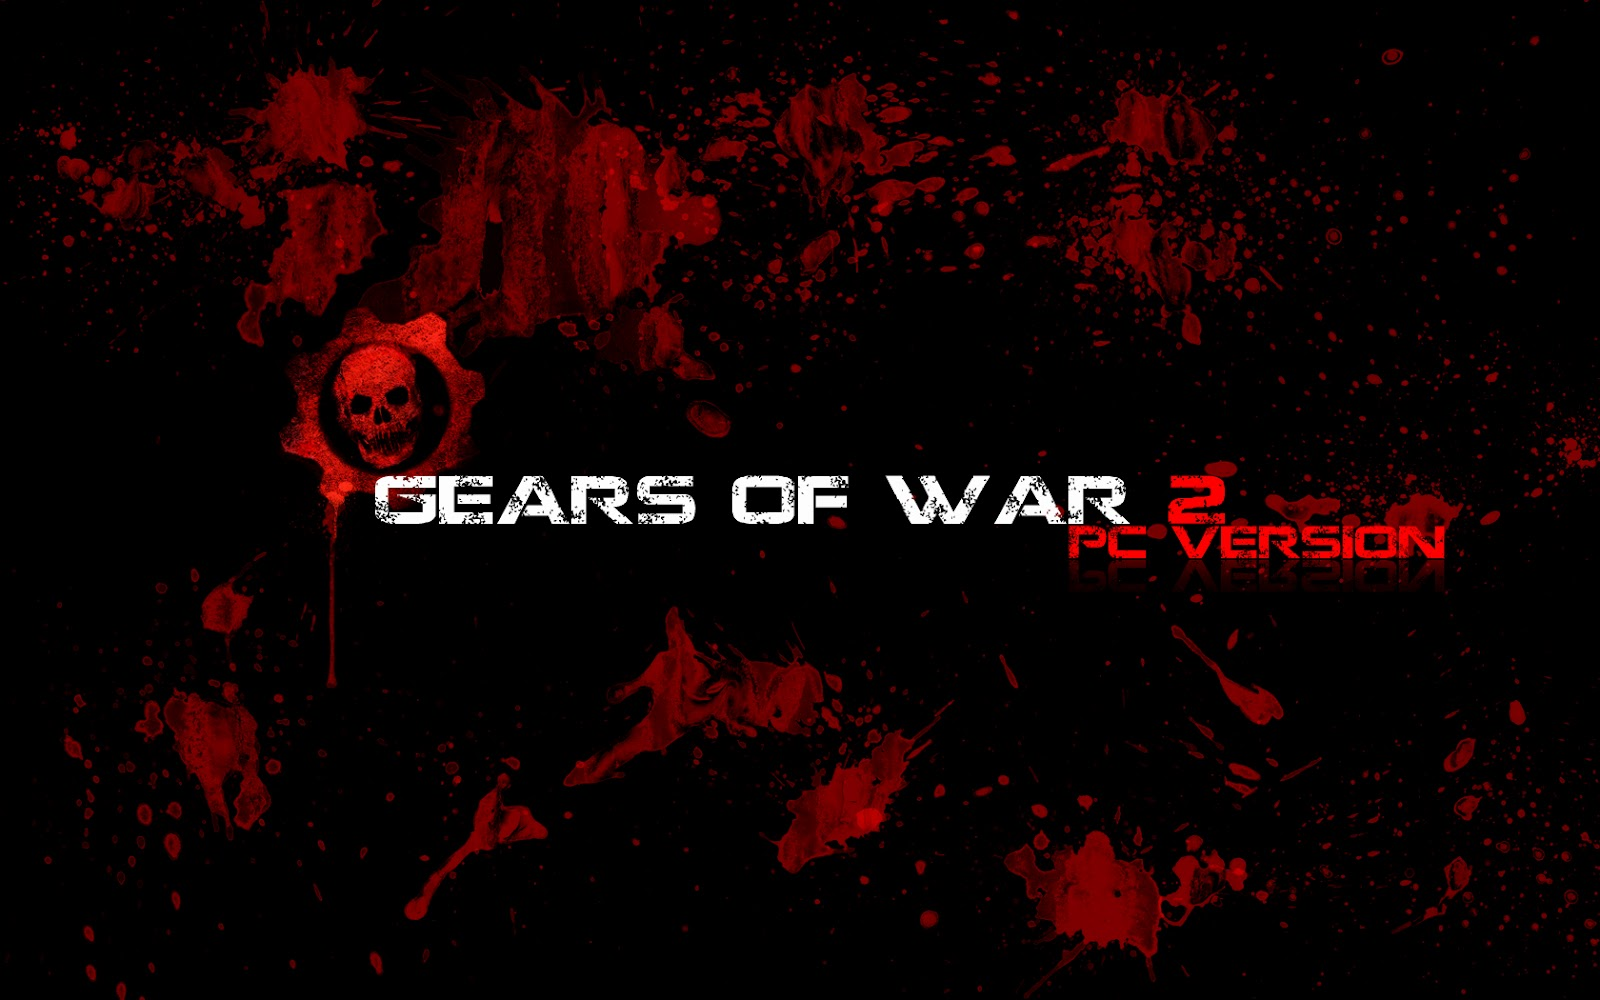 http://3.bp.blogspot.com/-ByO9bc1D9pk/UDgY1keF38I/AAAAAAAAHyU/ncijCmMgy94/s1600/gears-of-war-2-para-pc-wallpapers_18612_1680x1050.jpg